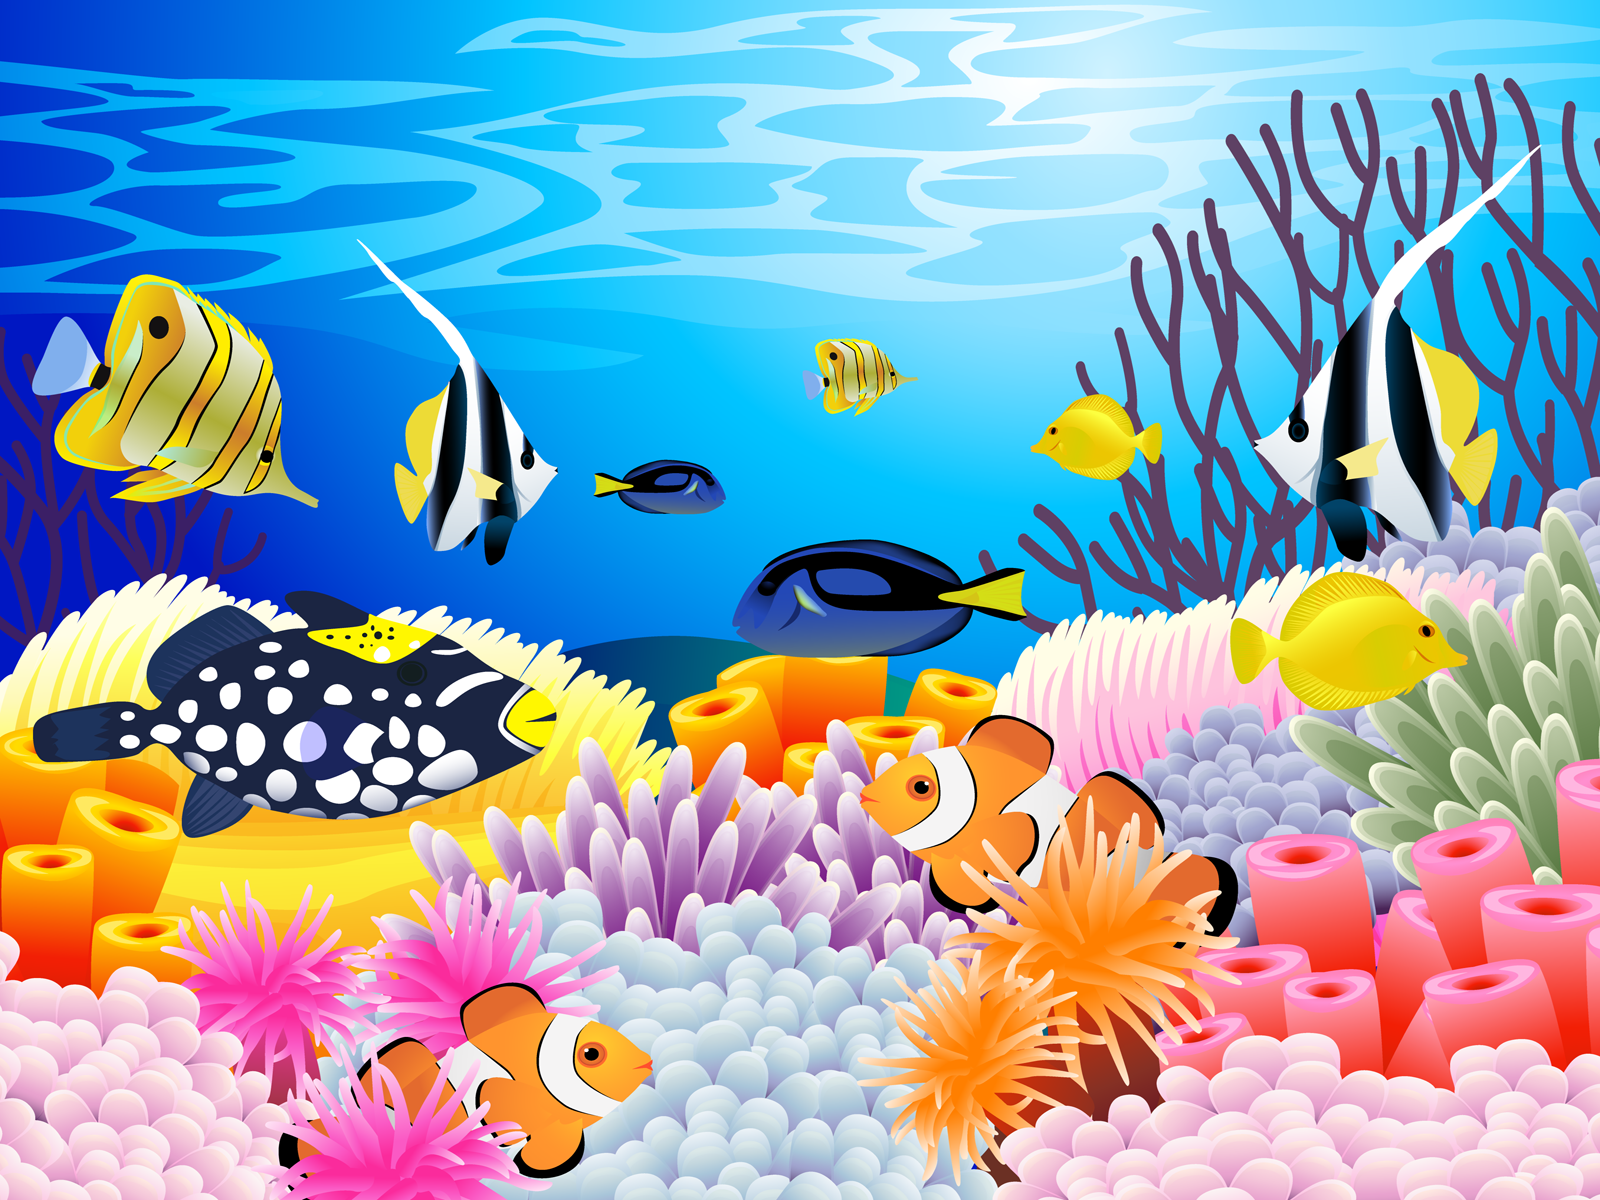 Under the sea wallpaper clipart clipart transparent library Free Coral Reef Cliparts, Download Free Clip Art, Free Clip Art on ... clipart transparent library